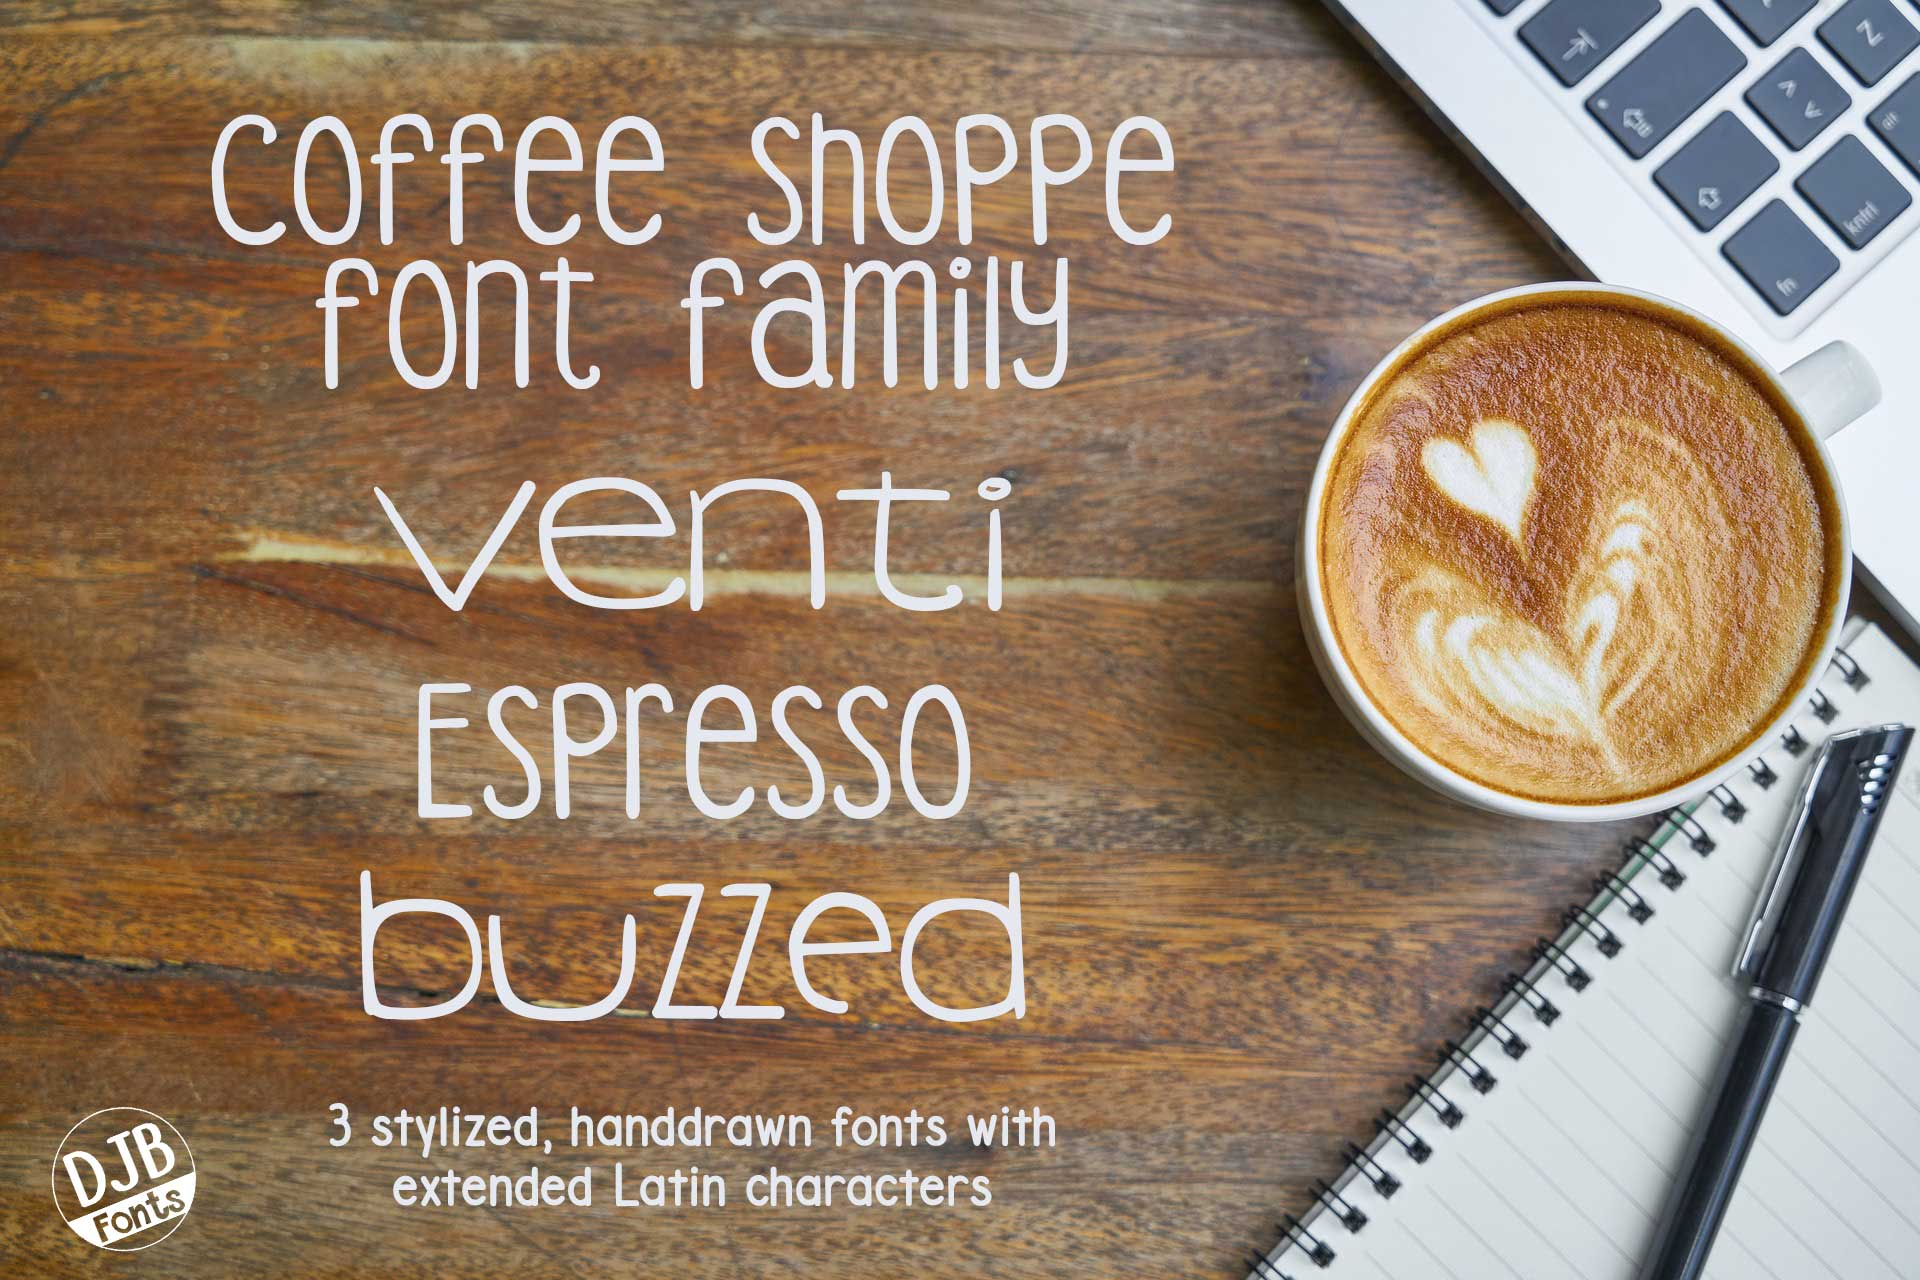 DJB Coffee Shoppe Font Bundle example image 1